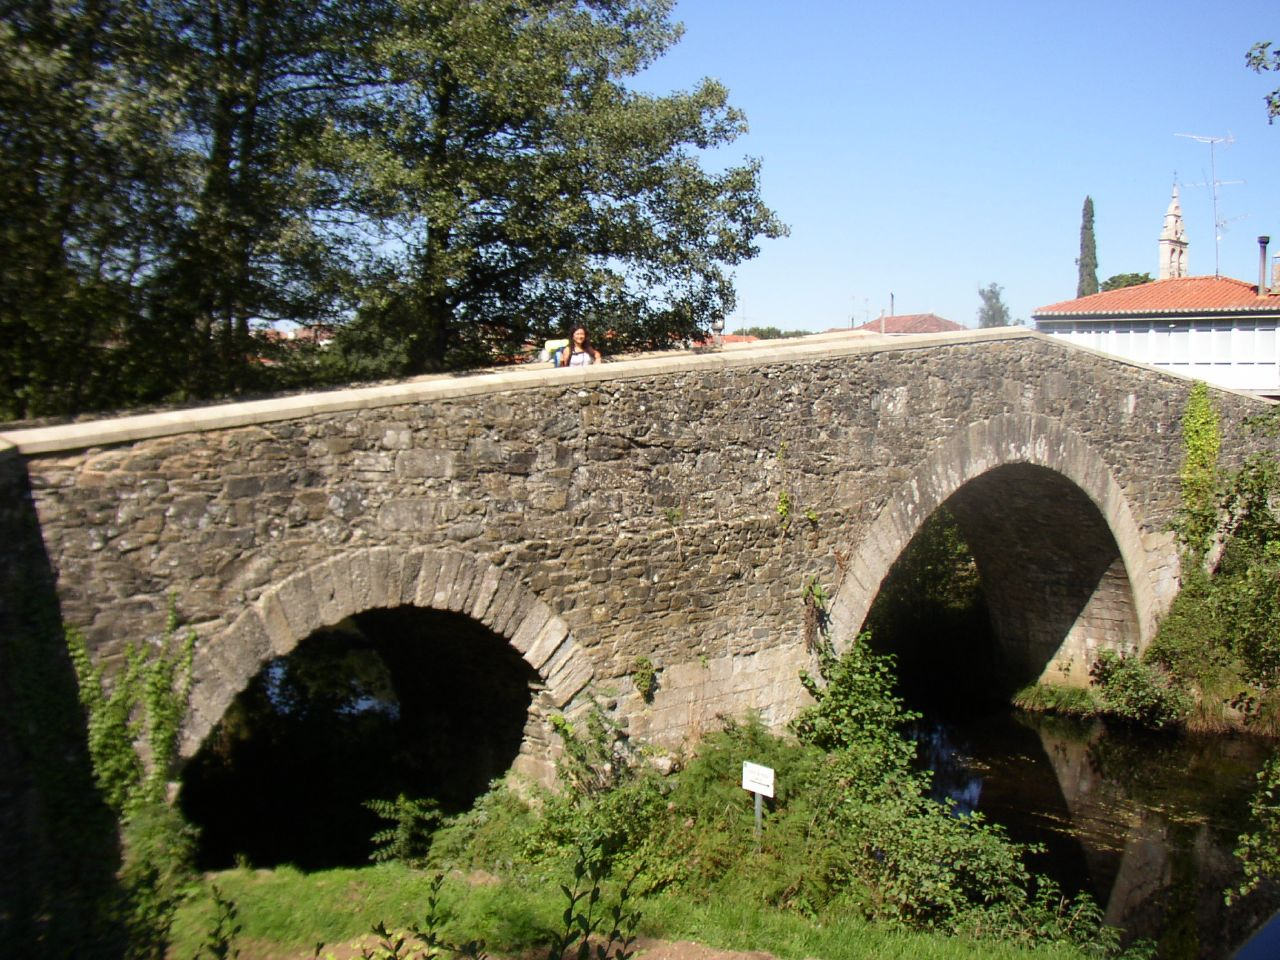 Furelos' Medieval bridge